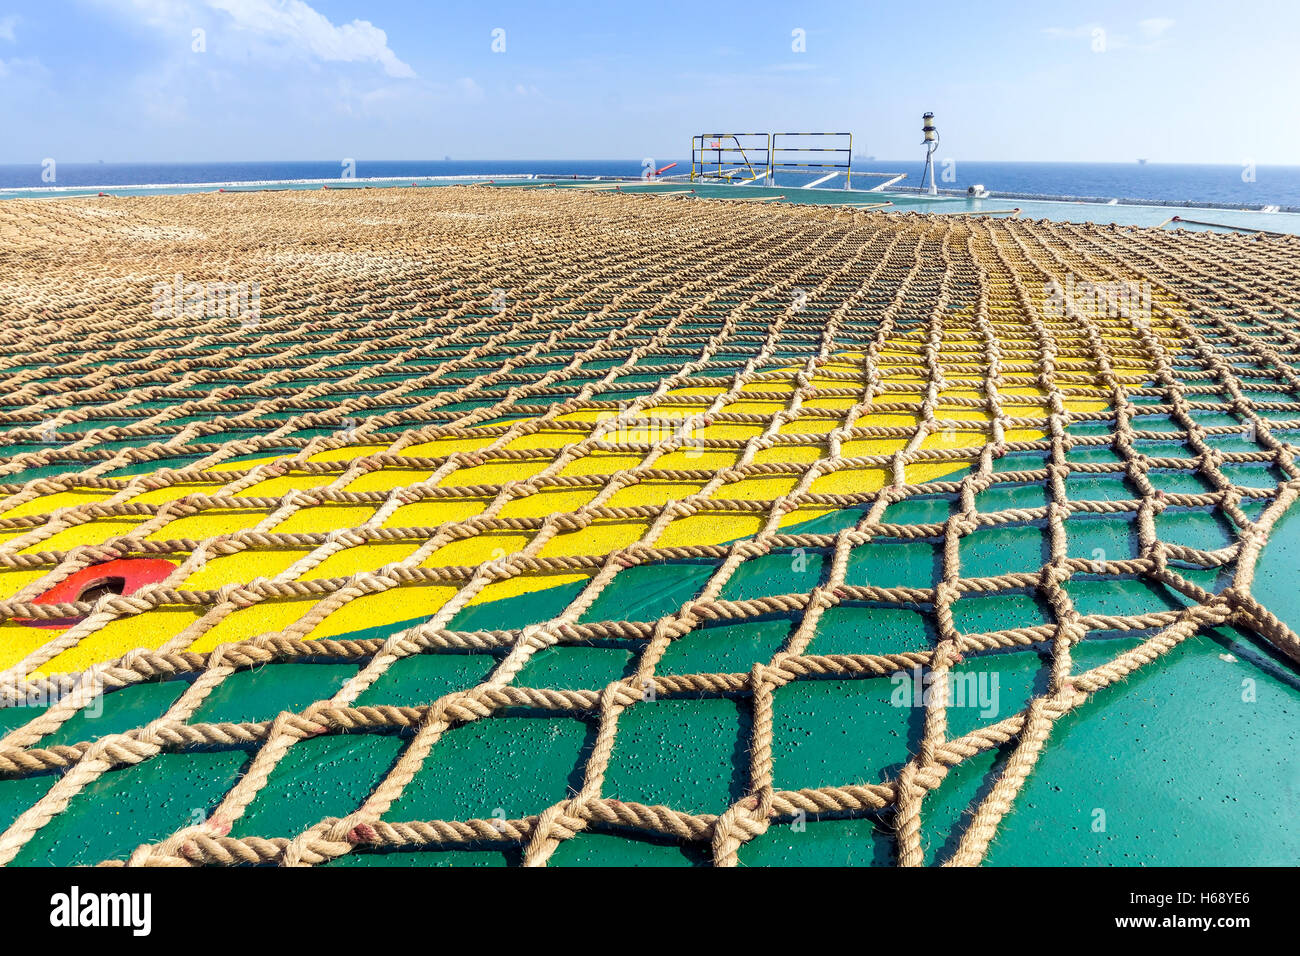 Netting on a helideck of an installation barge - Stock Image